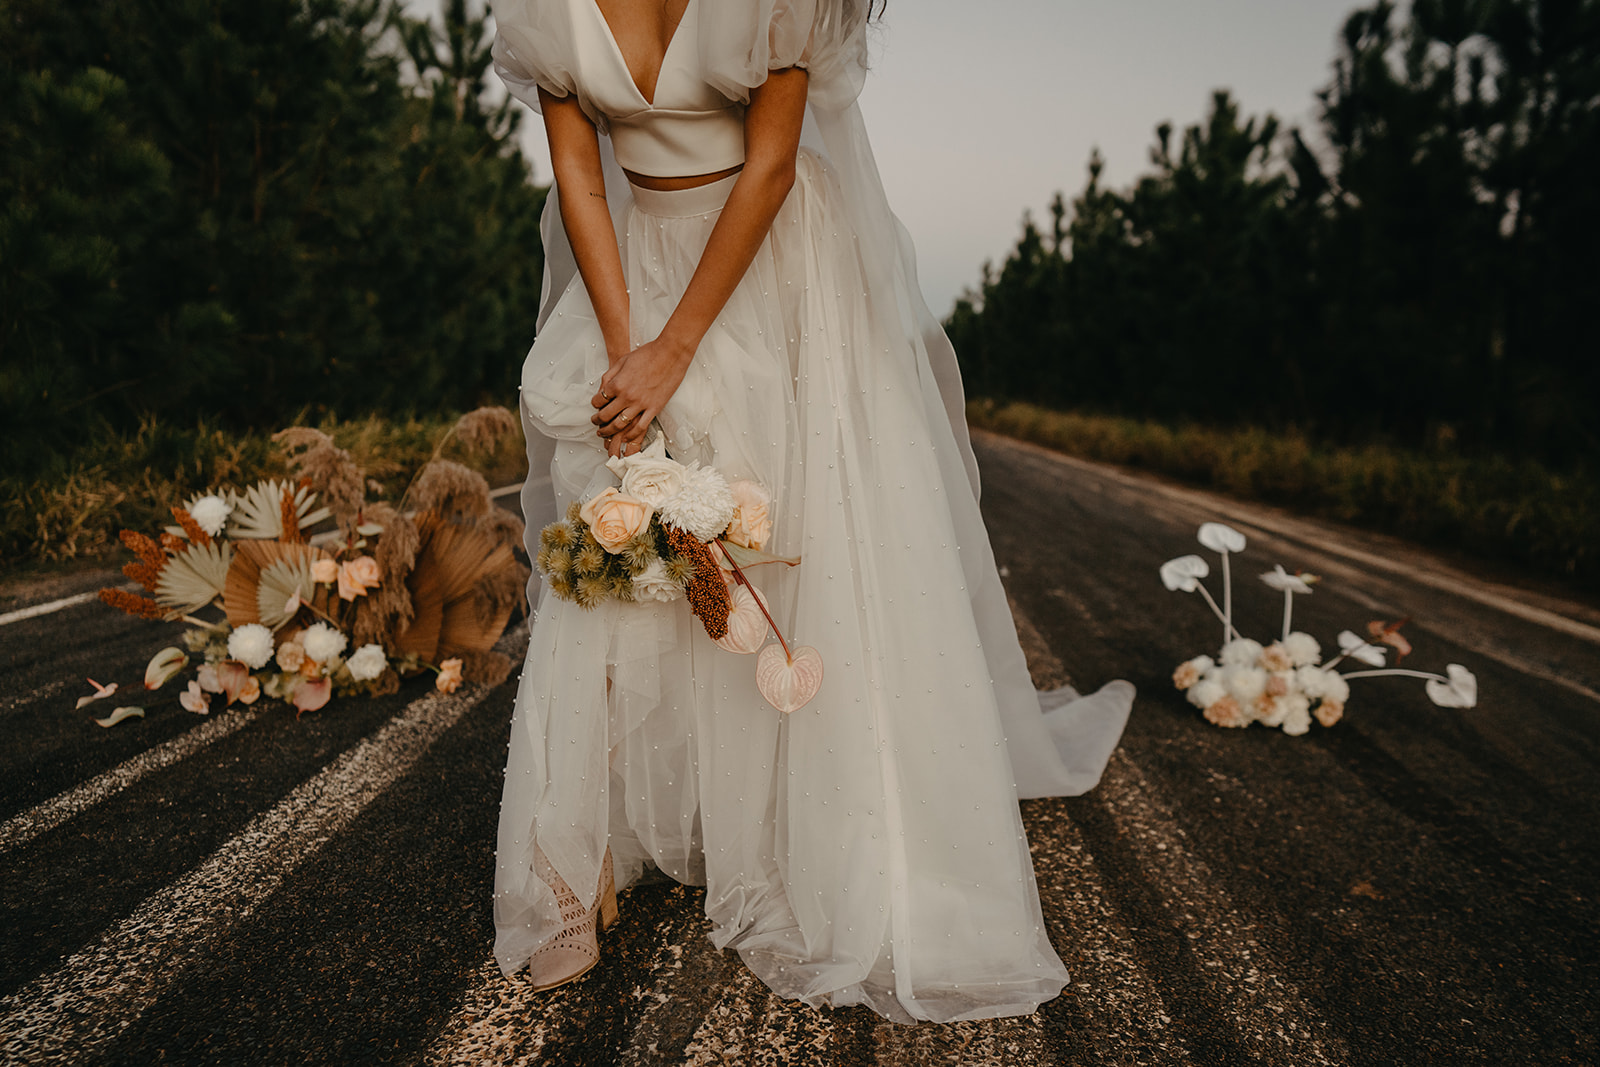 angela cannavo photography karen willis holmes skirt alternative bridal bouquet florals